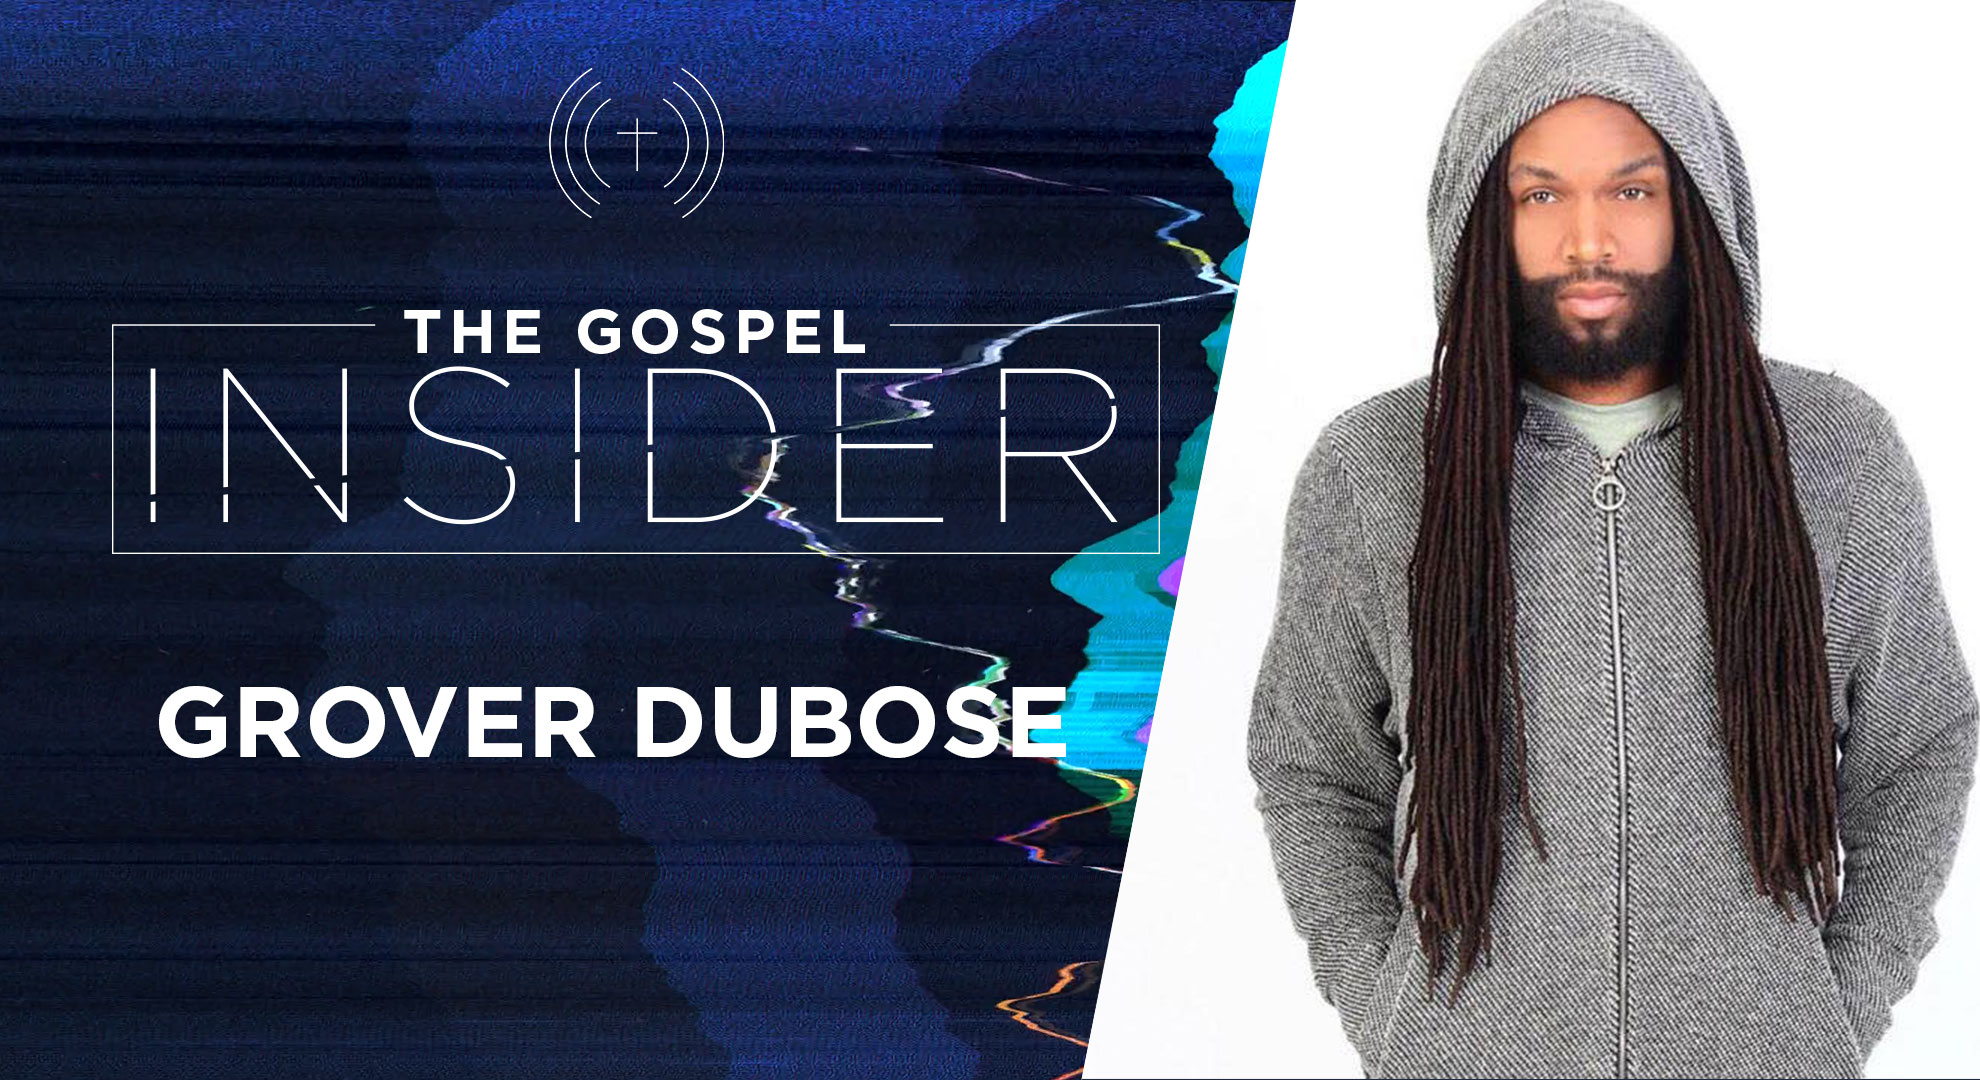 The Gospel Insider – Grover Dubose